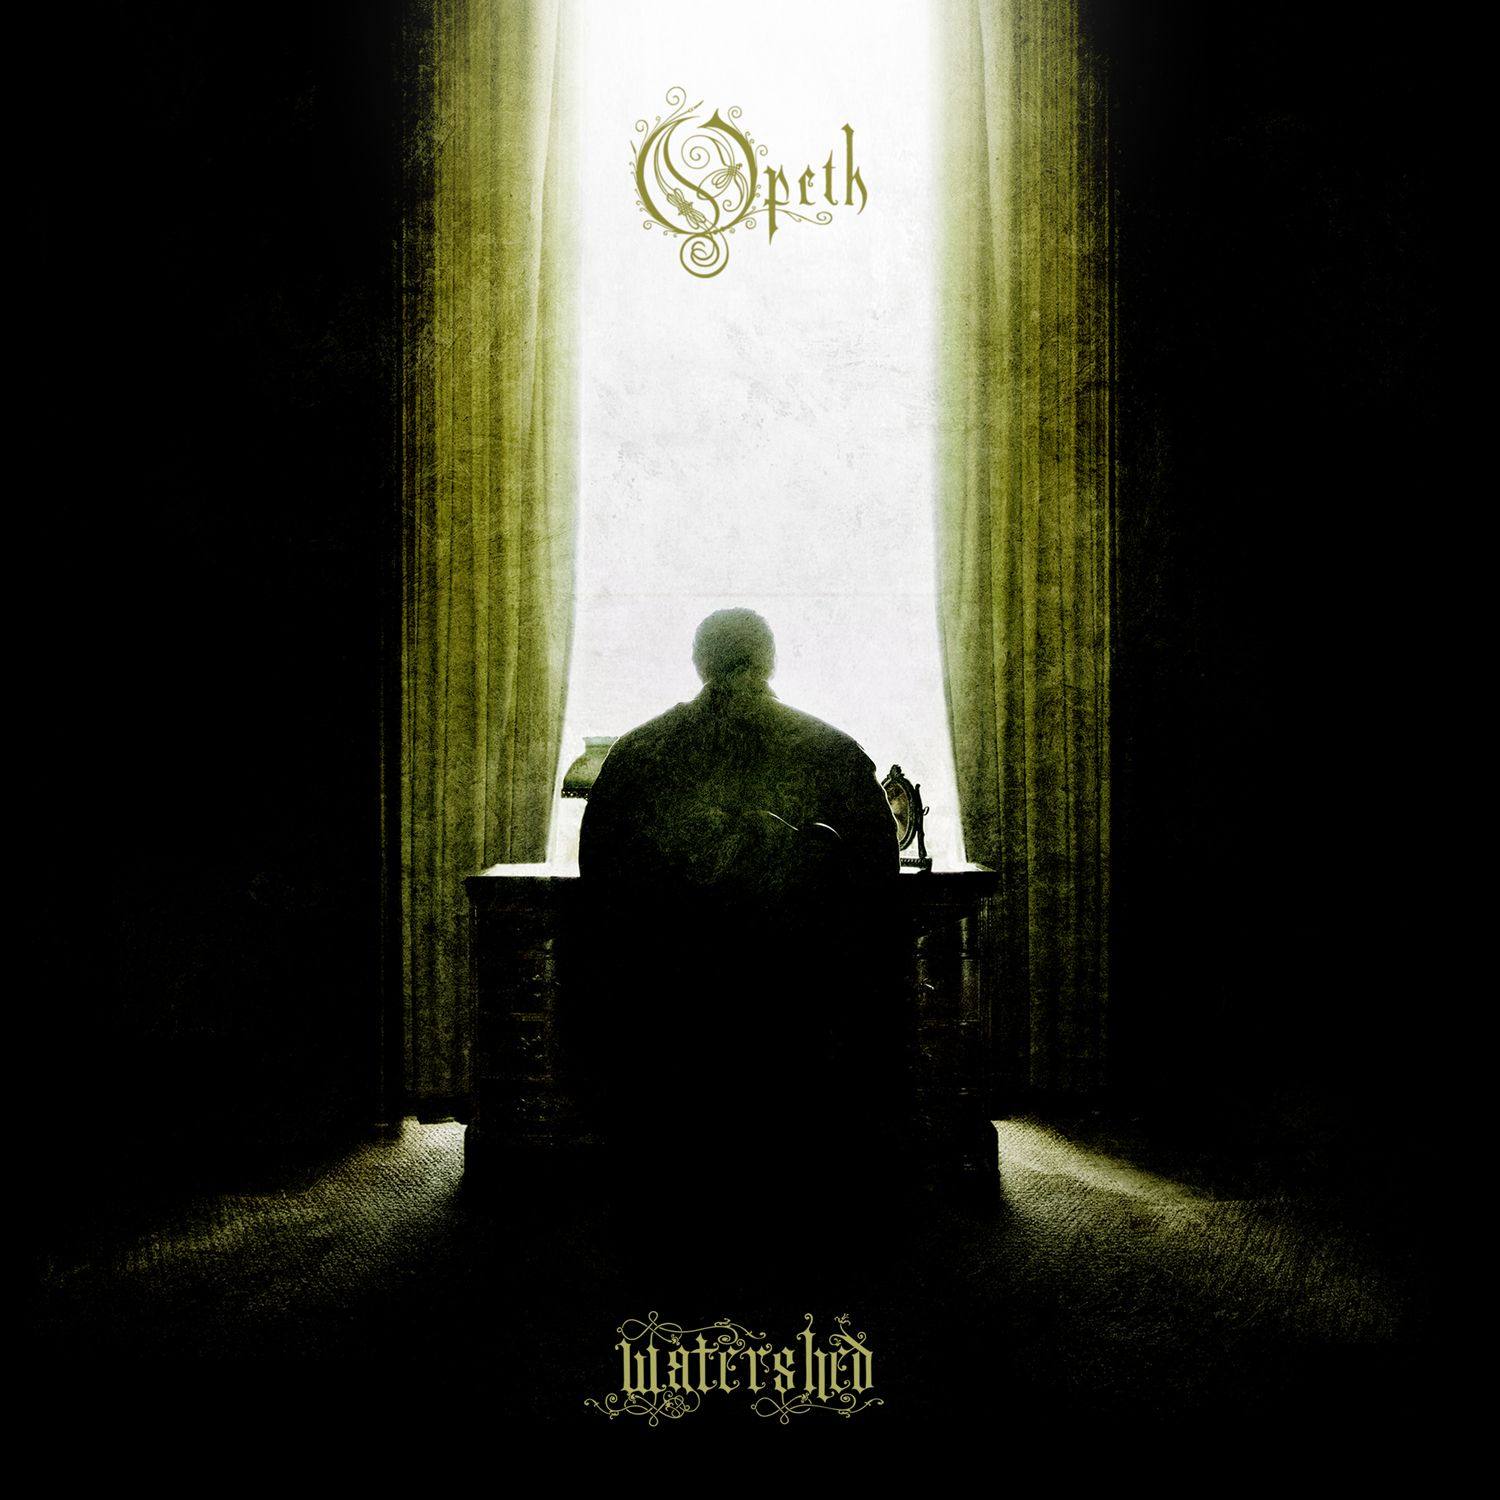 Opeth - Watershed album cover